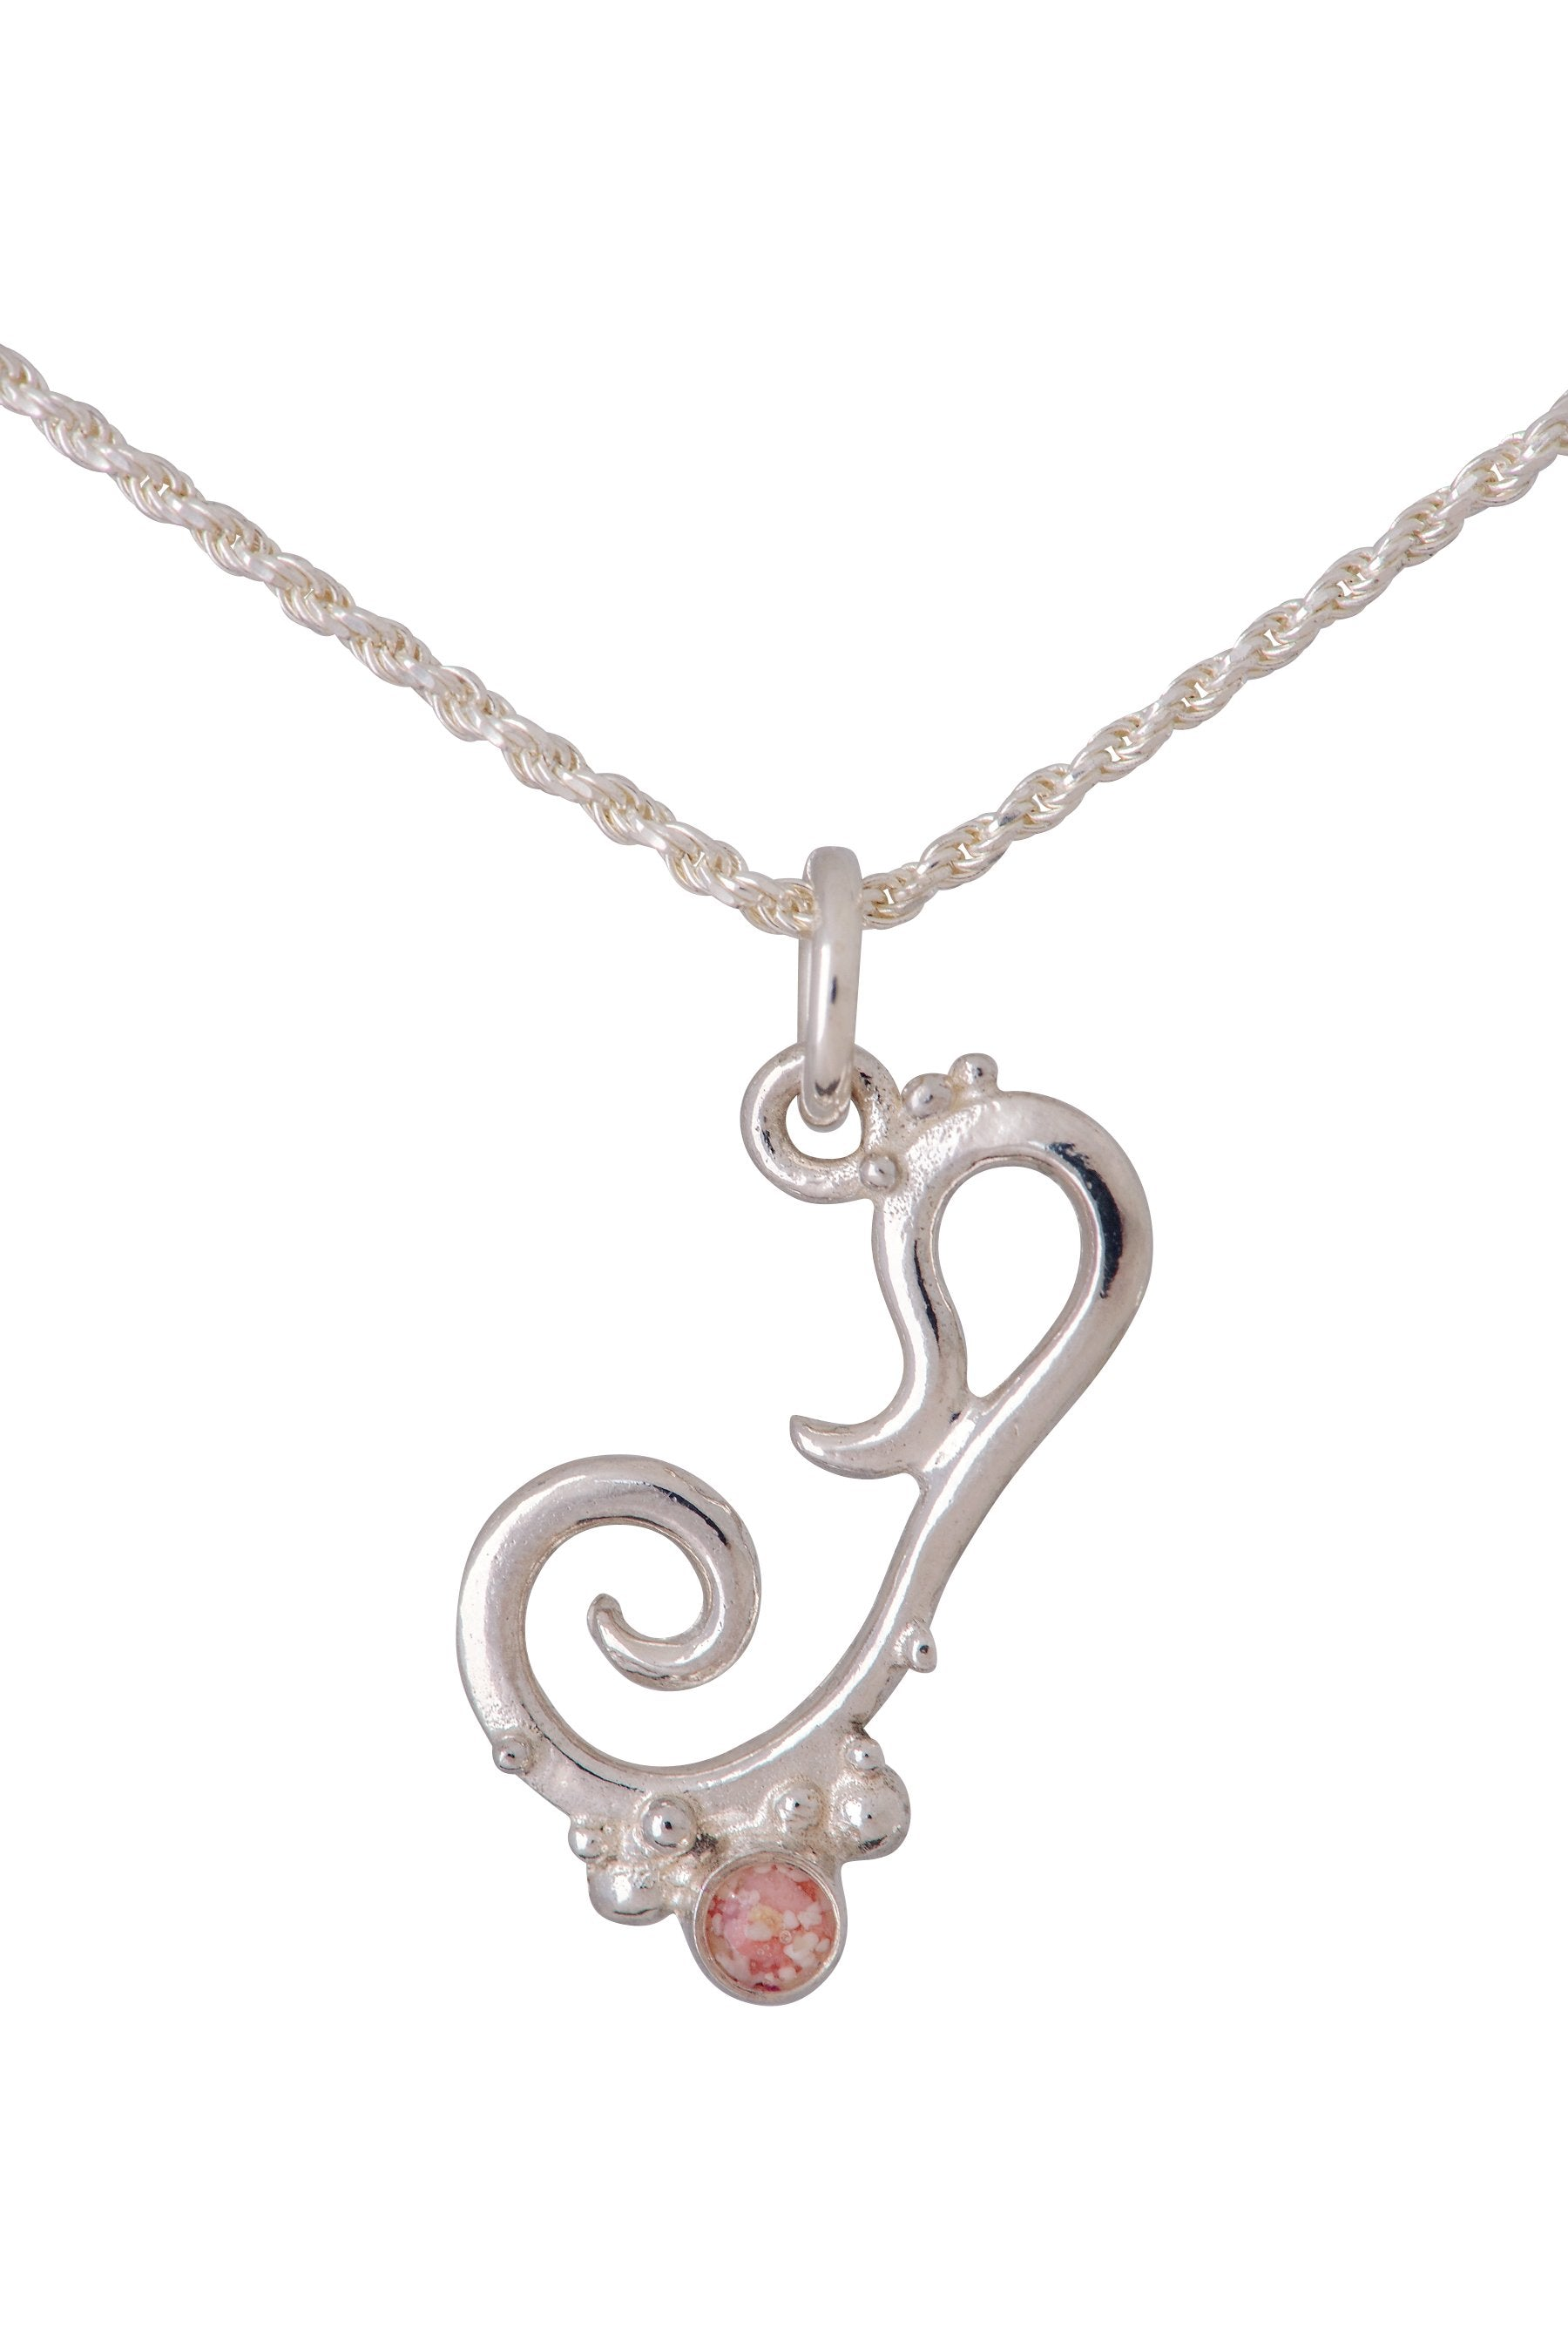 pdp charm under the and pendant main photo personalised online johnlewis at necklace rsp buyunder tiny rose com